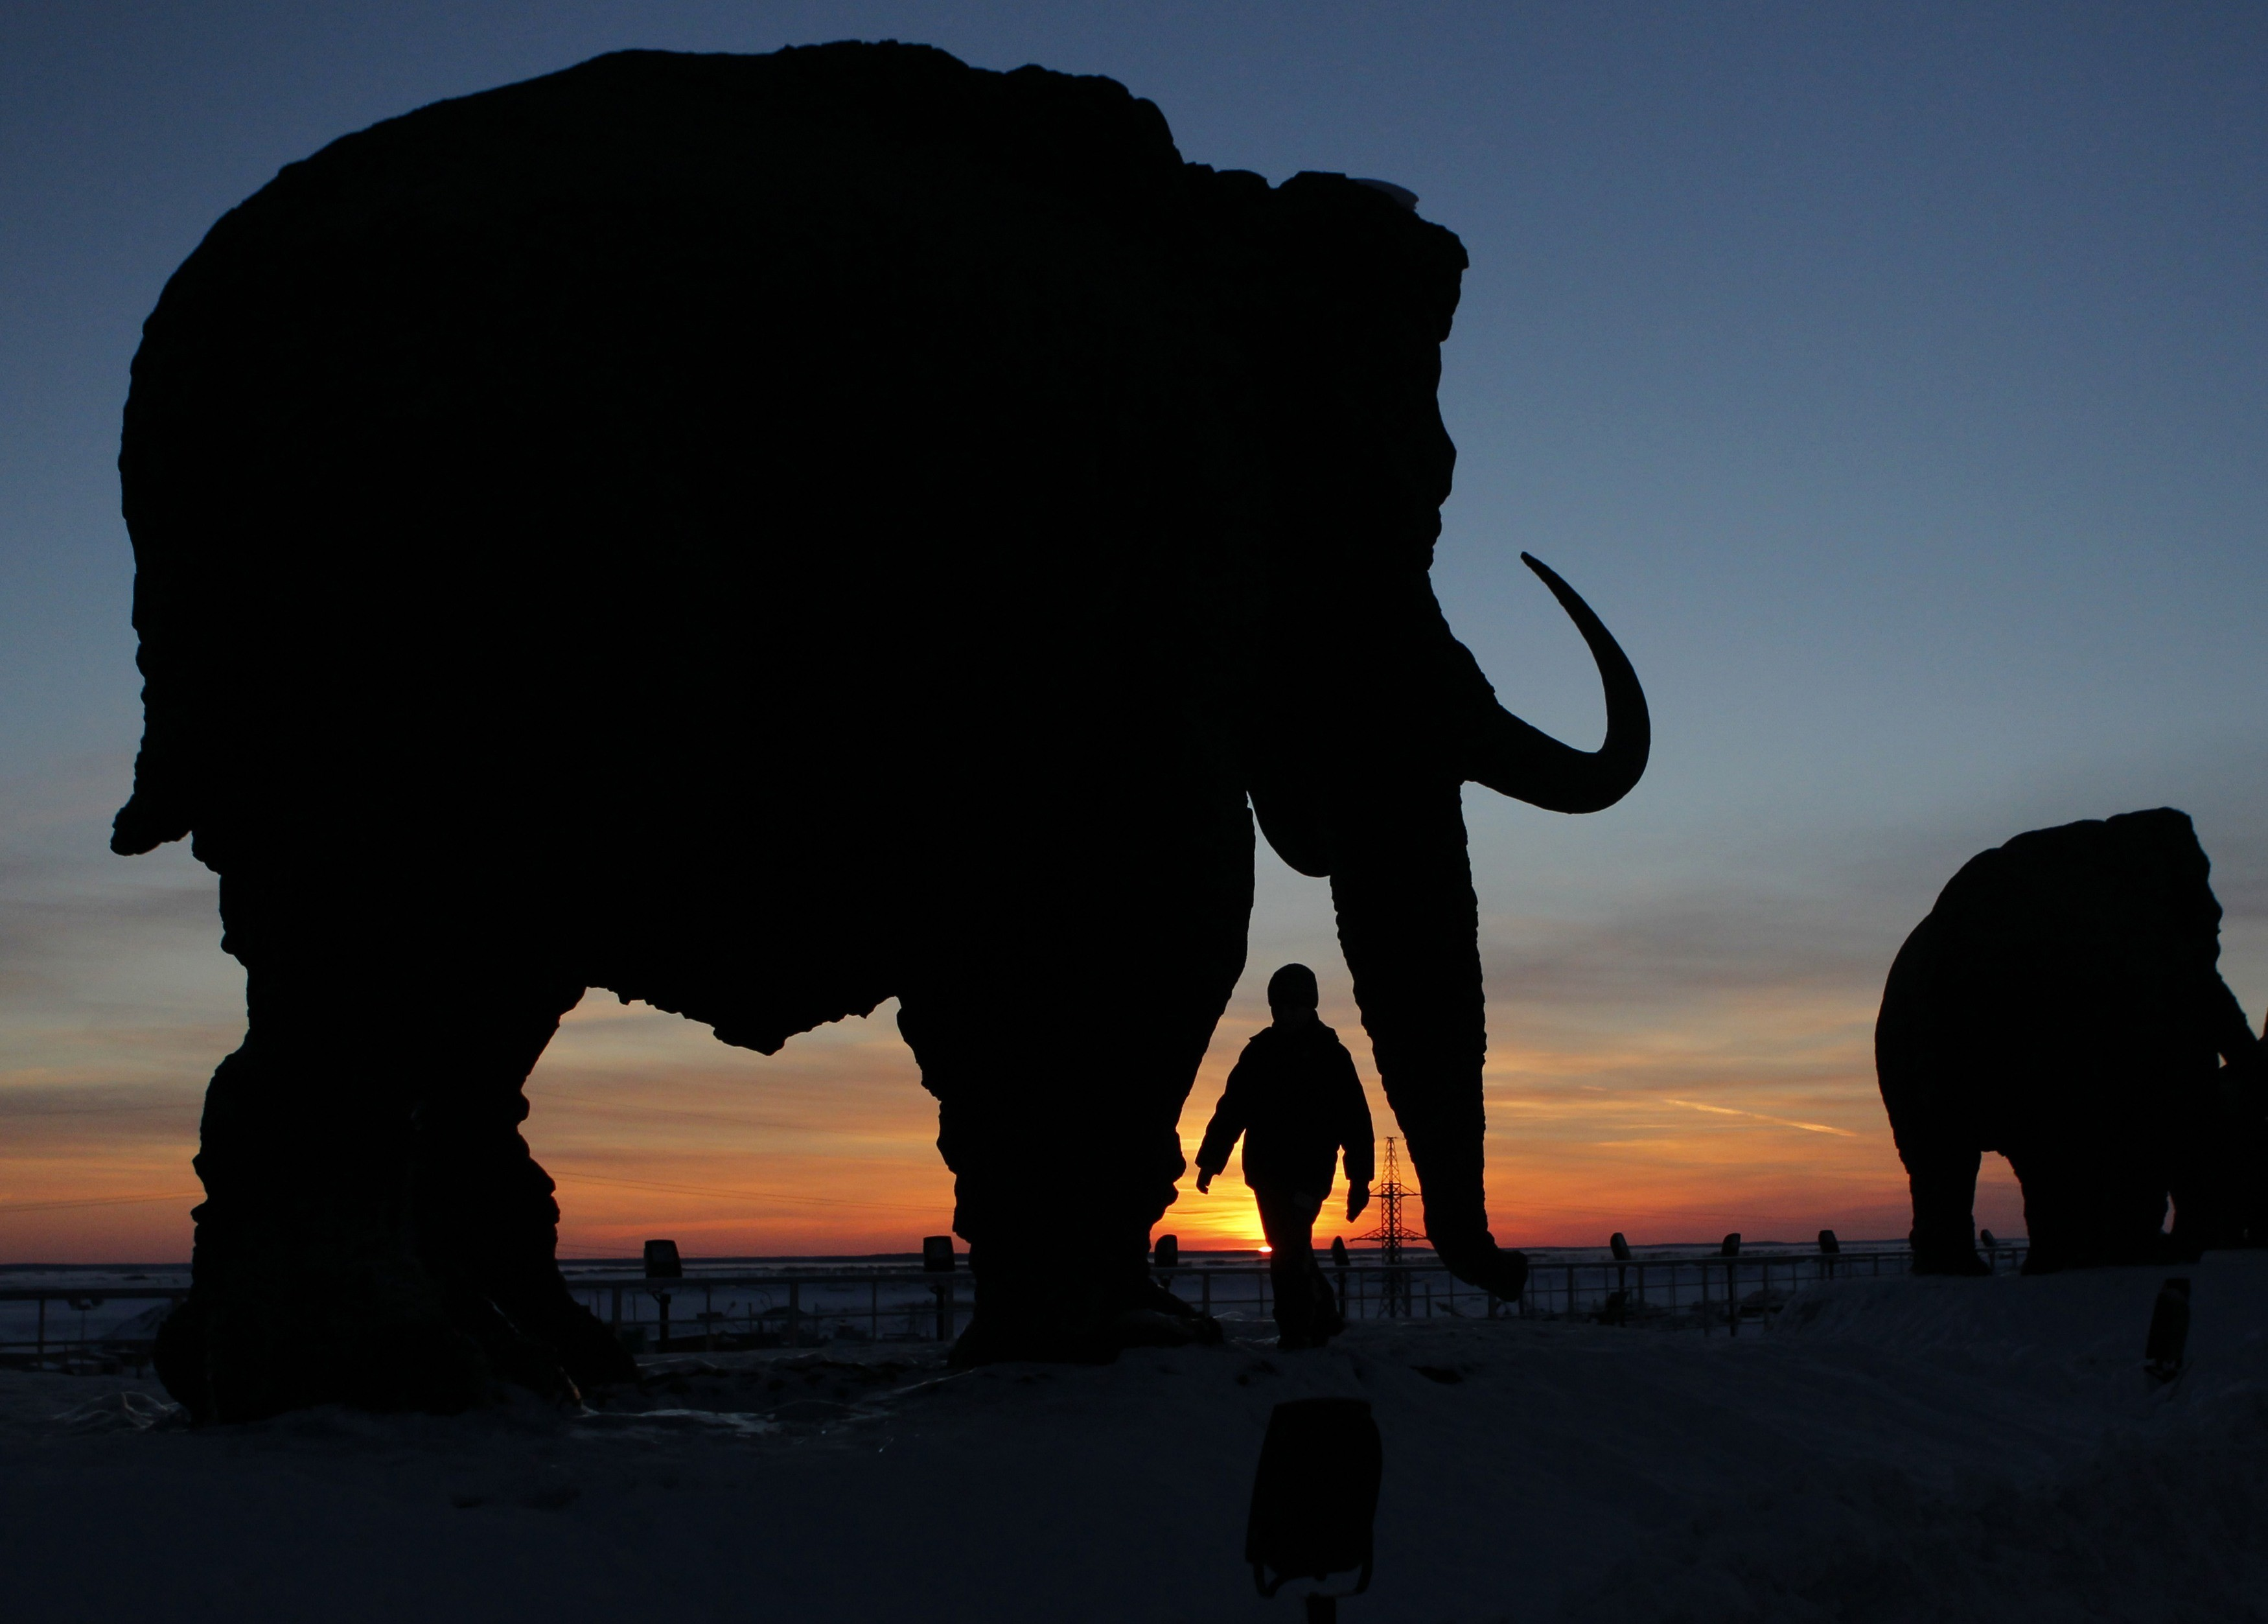 A child walks near a sculpture displaying a mammoth during sunset on the outskirts of Khanty-Mansiysk, March 4, 2011.  REUTERS/Tatyana Makeyeva  (RUSSIA - Tags: SOCIETY ANIMALS) - GF2E73716M001